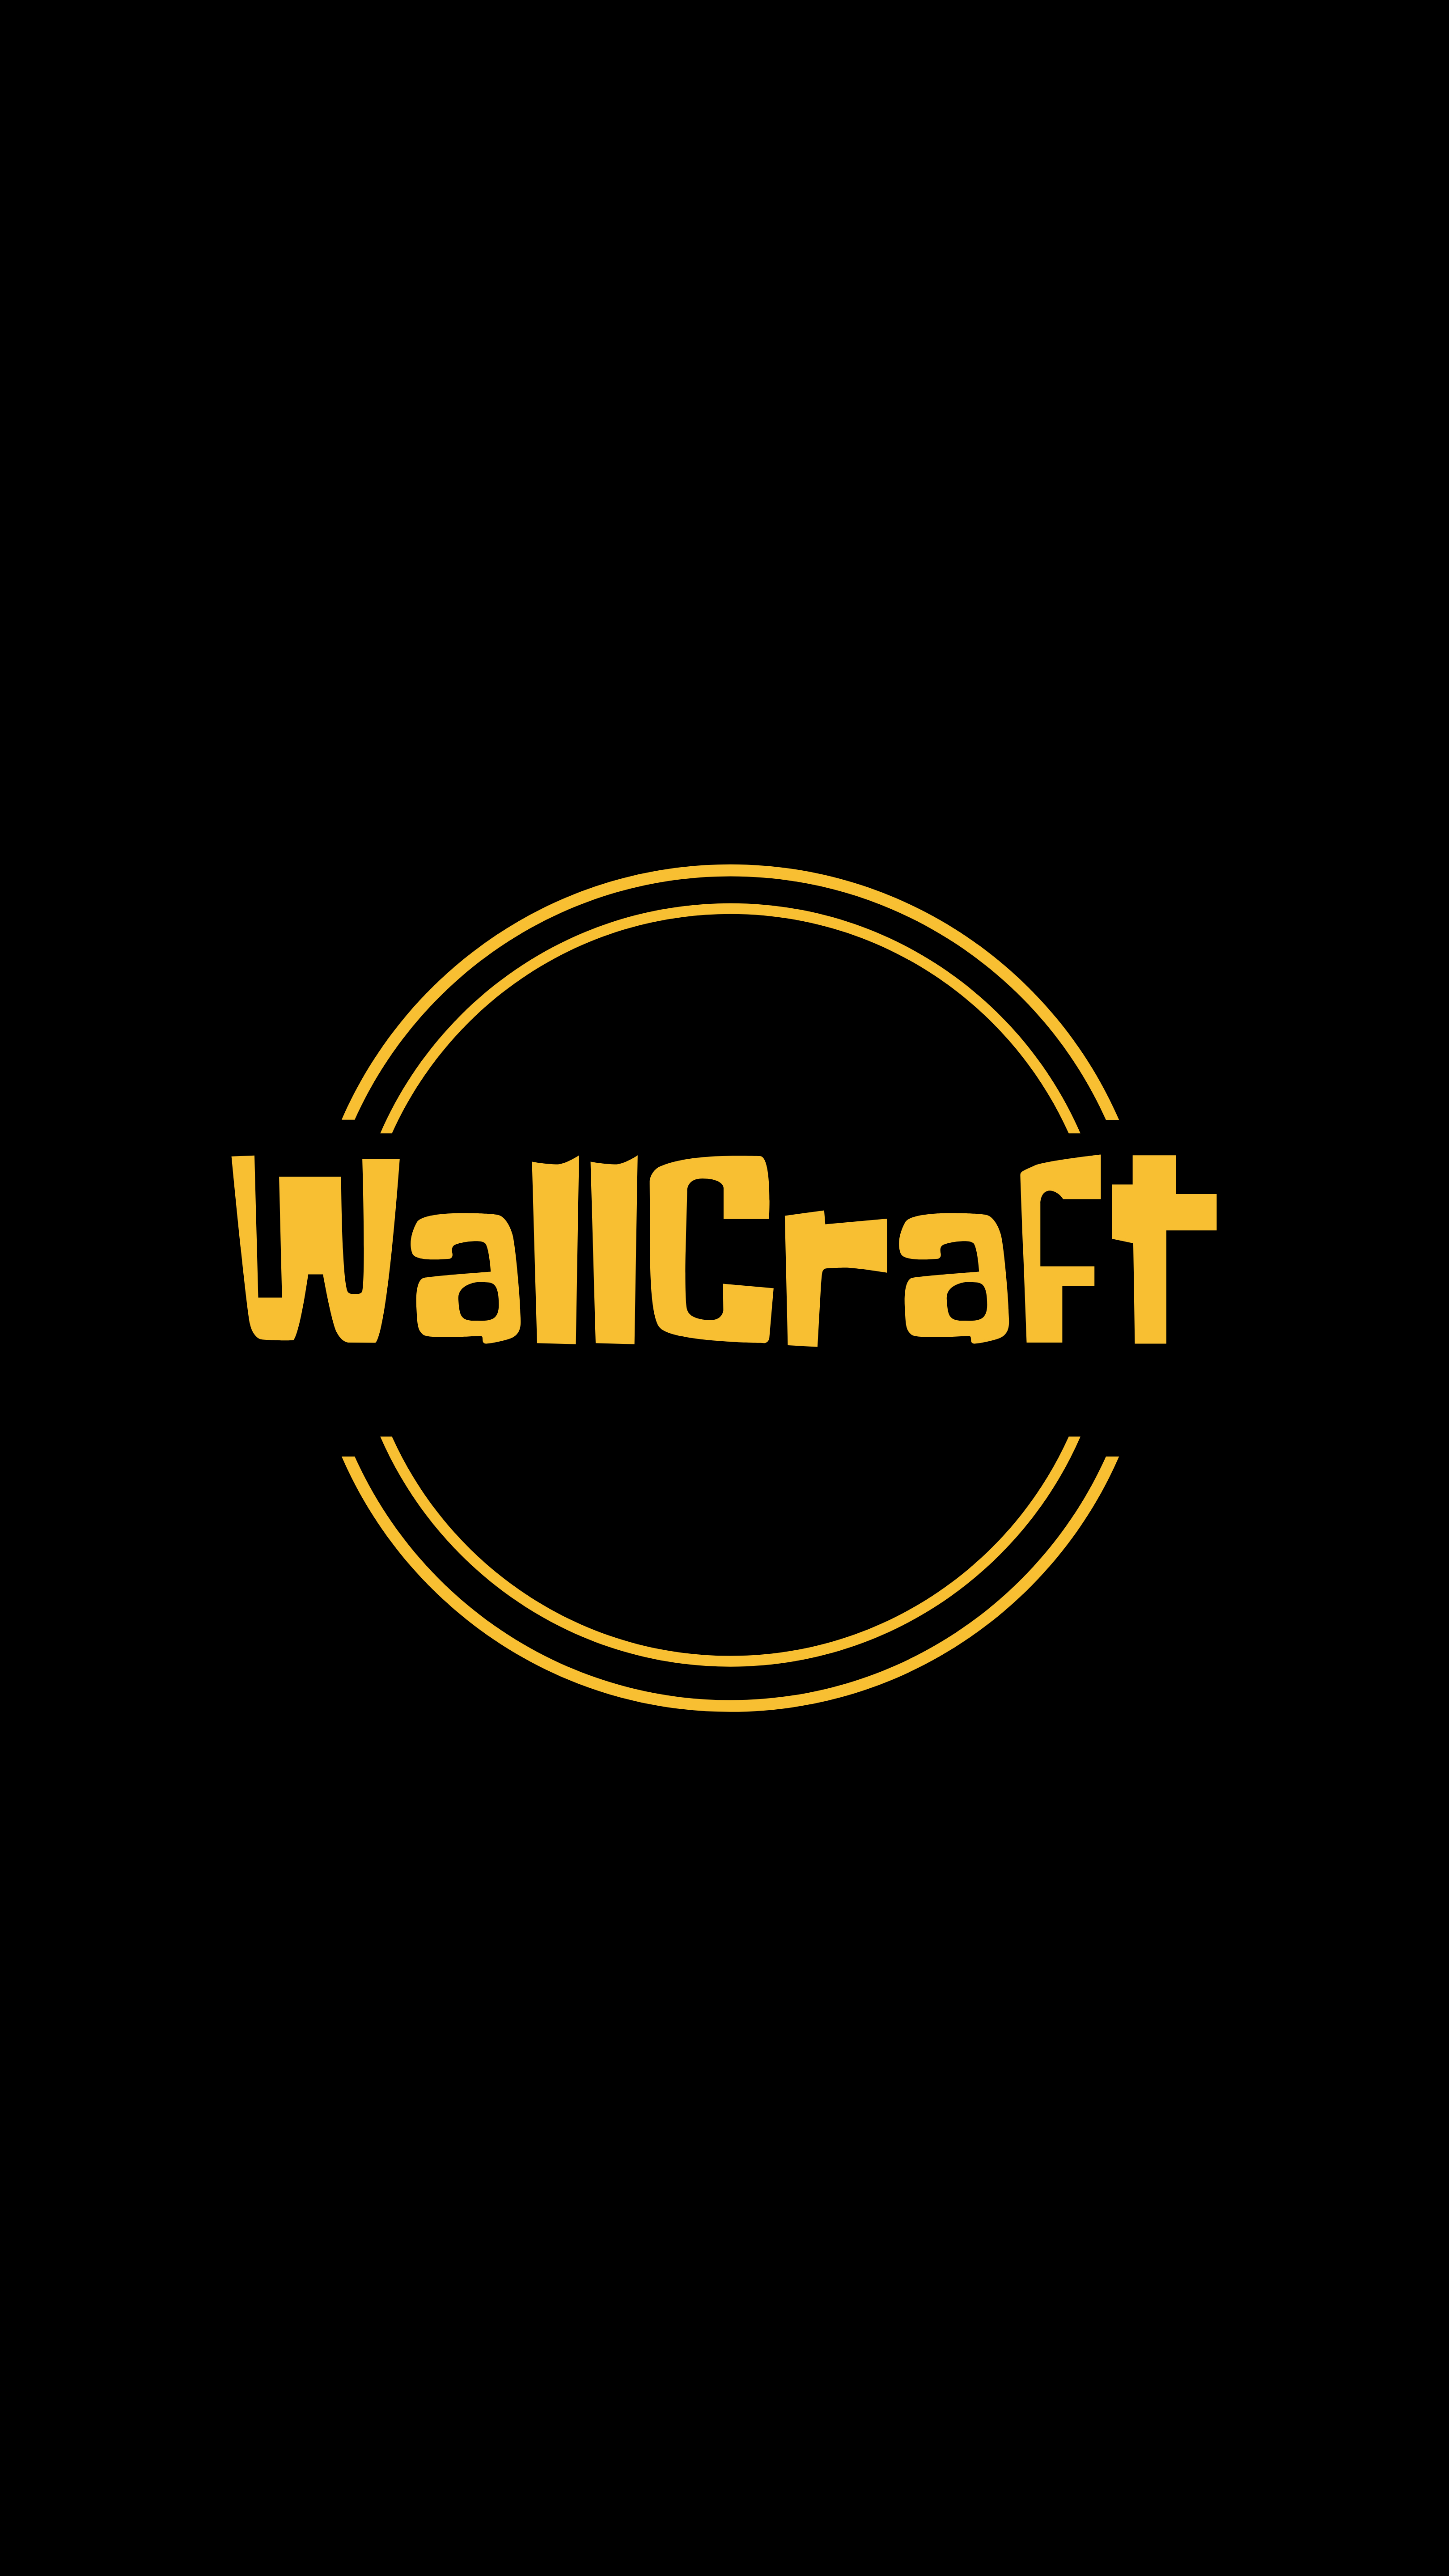 70030 Screensavers and Wallpapers Text for phone. Download Words, Inscription, Text, Word, Logo, Logotype, Wallcraft pictures for free